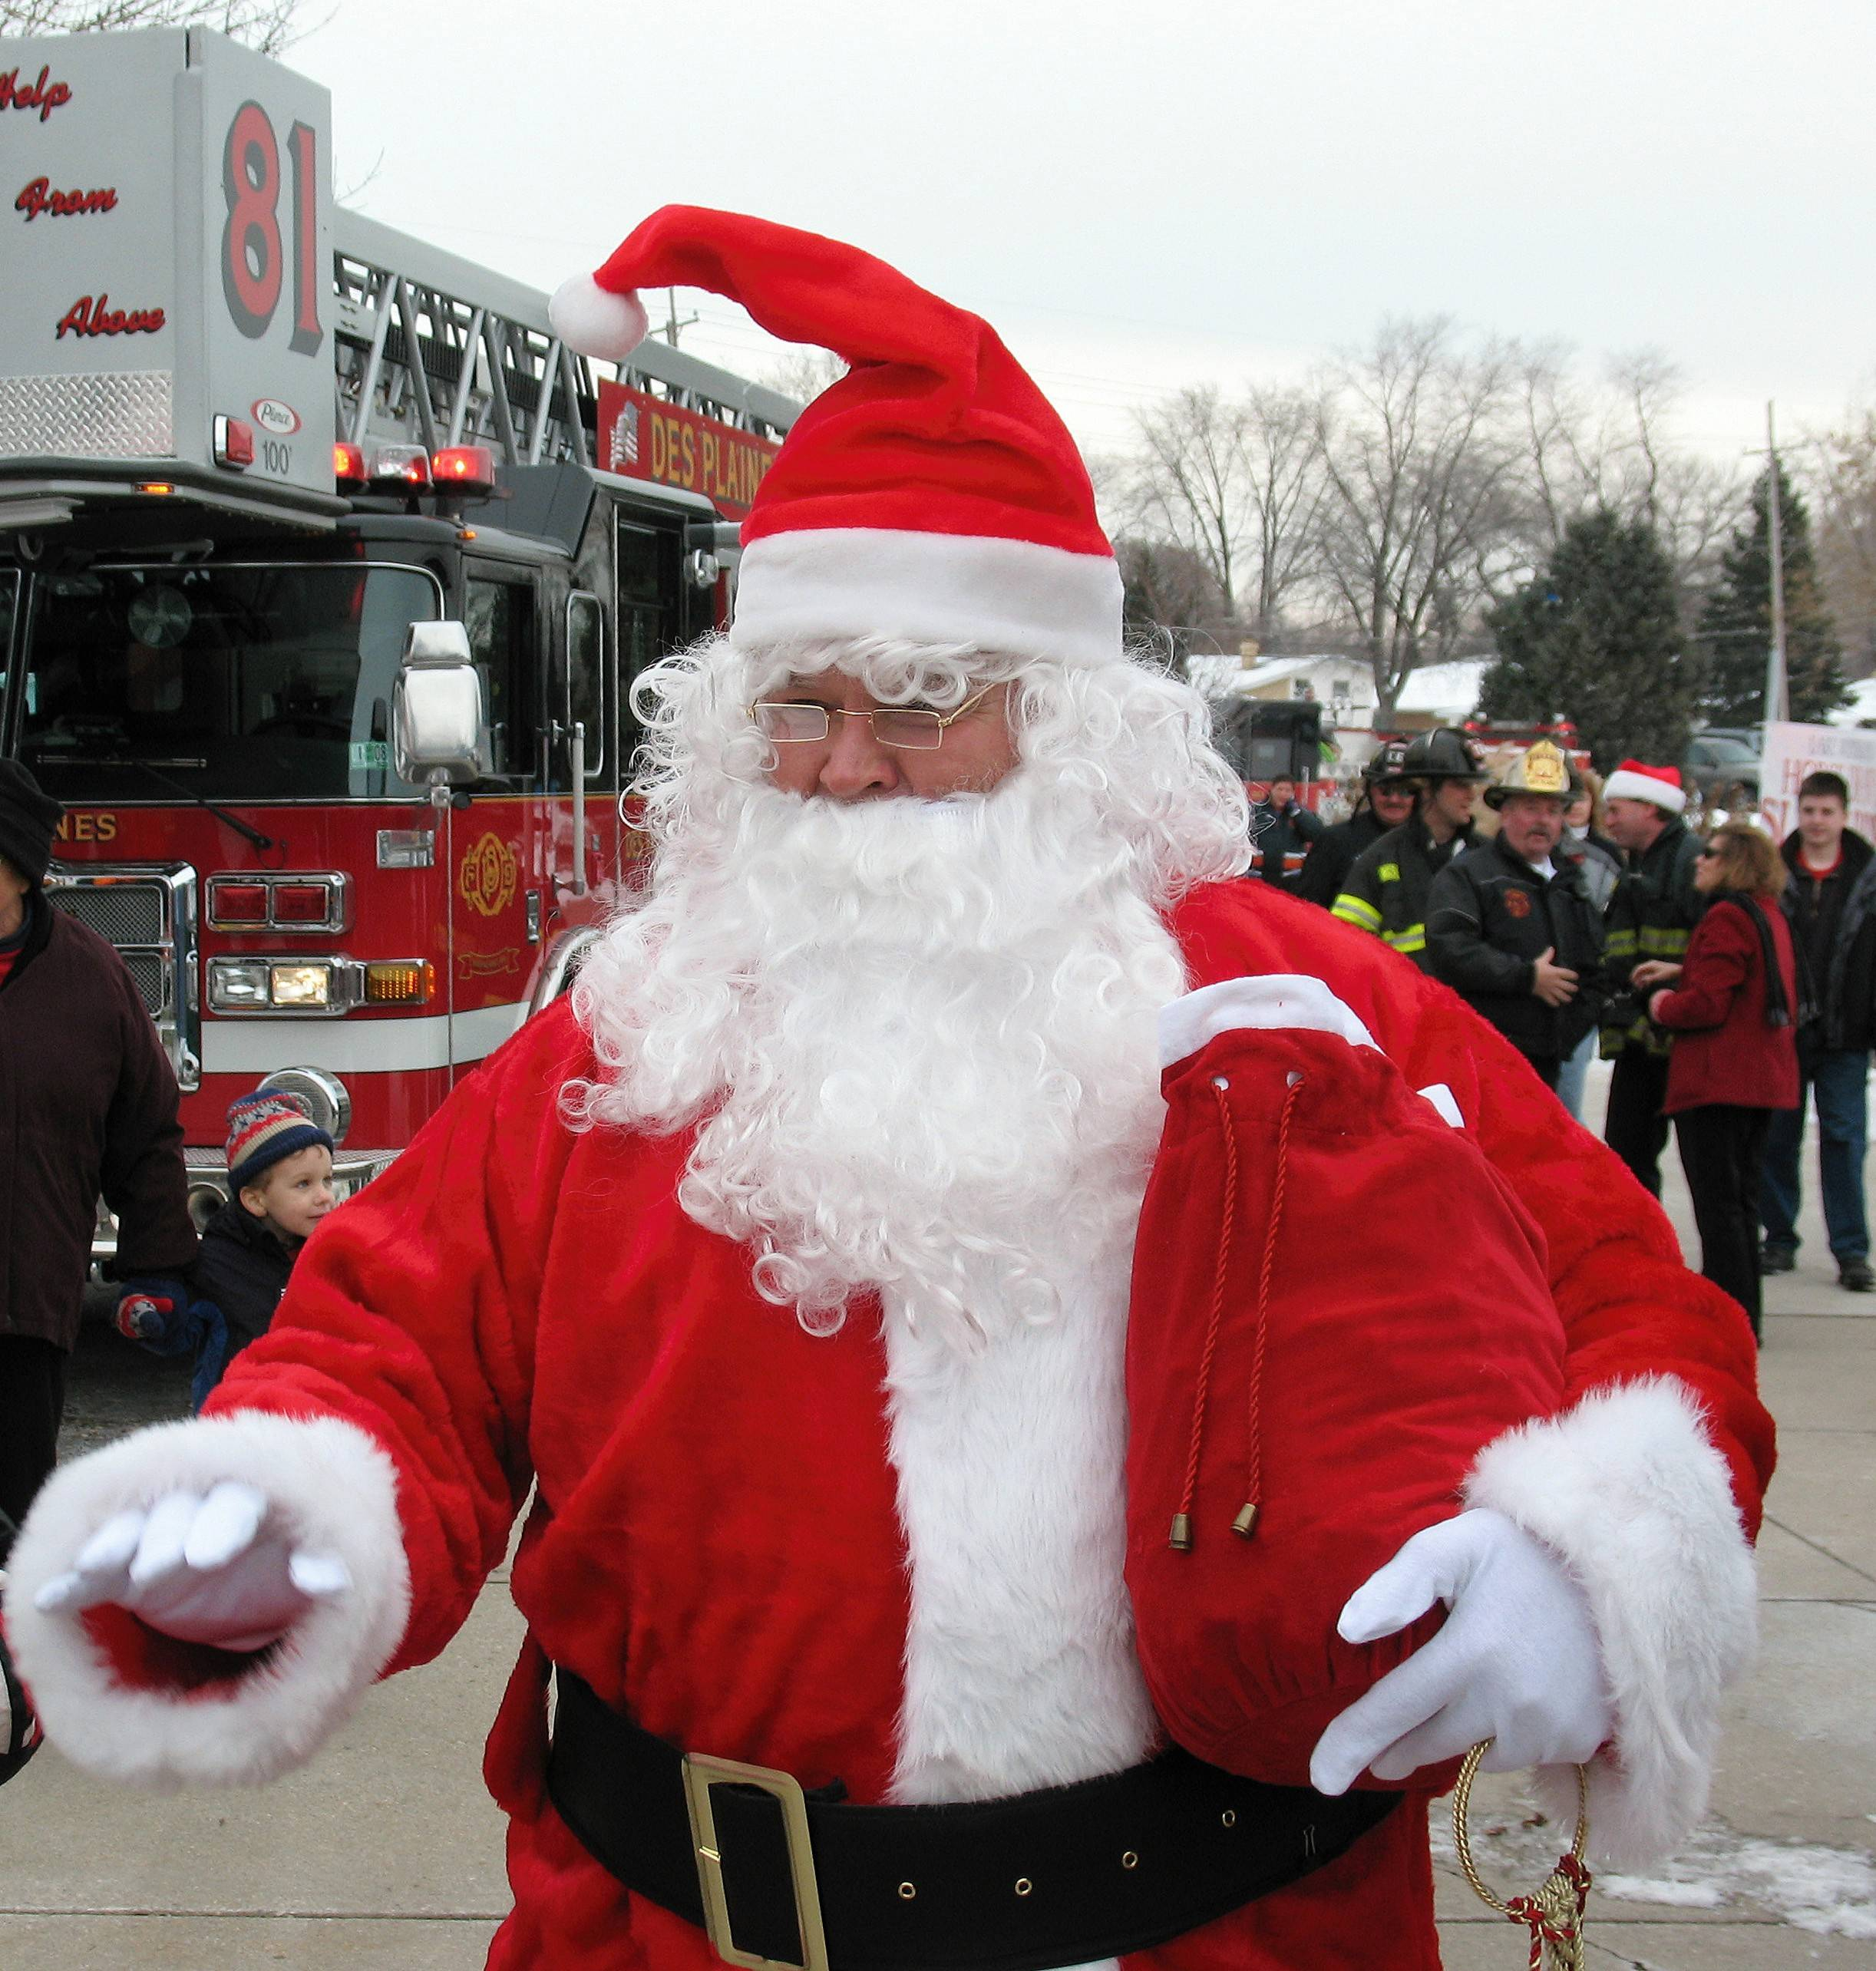 Santa Claus will be on hand to meet visitors at the Winter Wonderland Holiday Festival in Des Plaines.